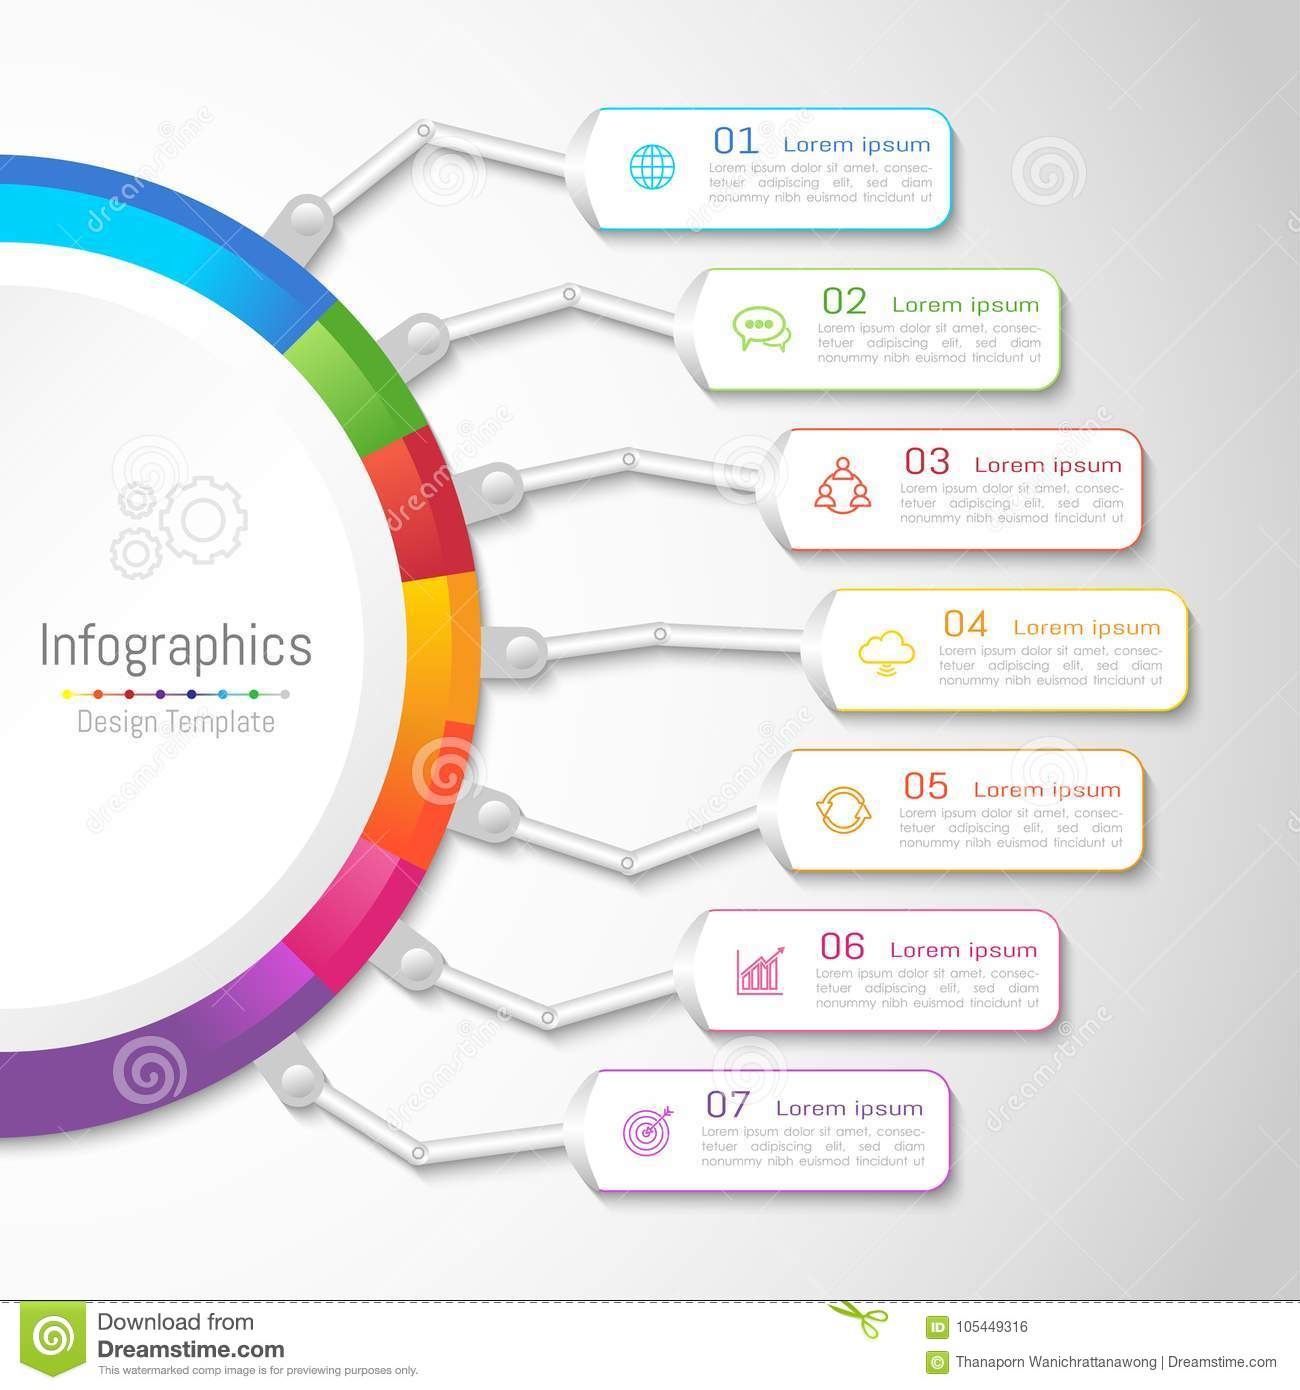 Infographic design elements for your business with 7 options.